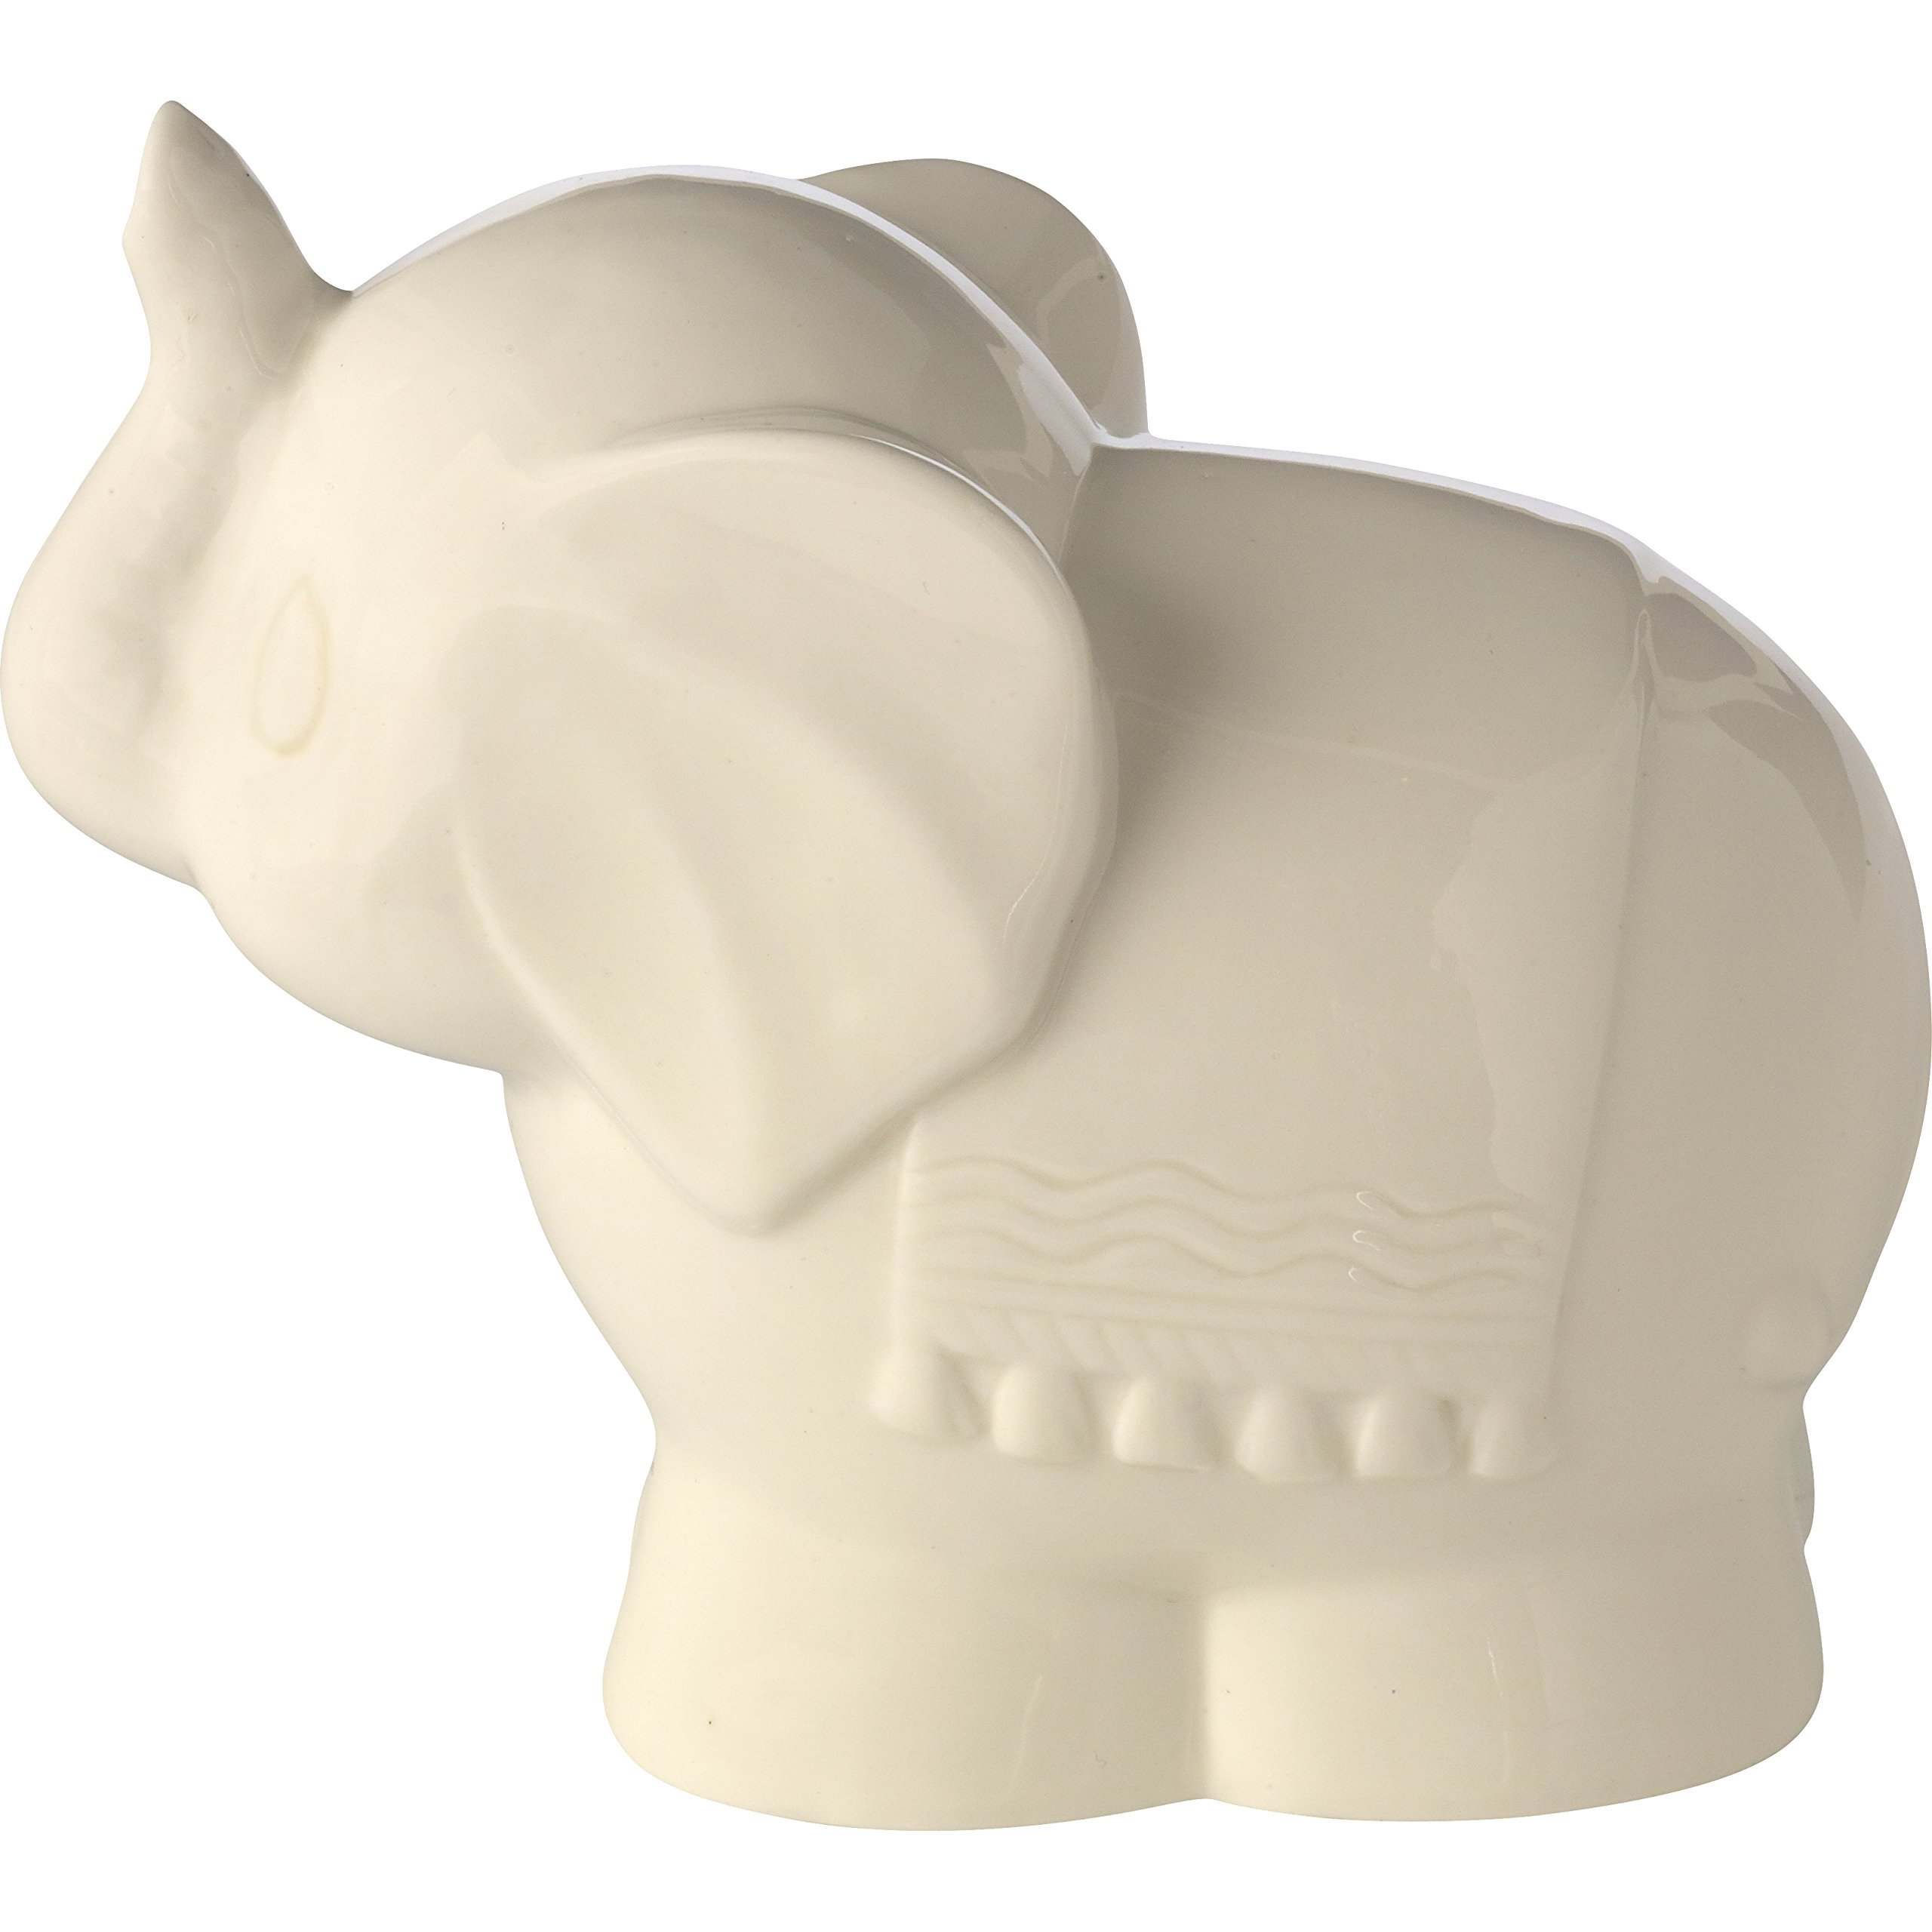 Precious Moments Tuk Elephant Ceramic Battery Operated Nightlight, Beige by Precious Moments